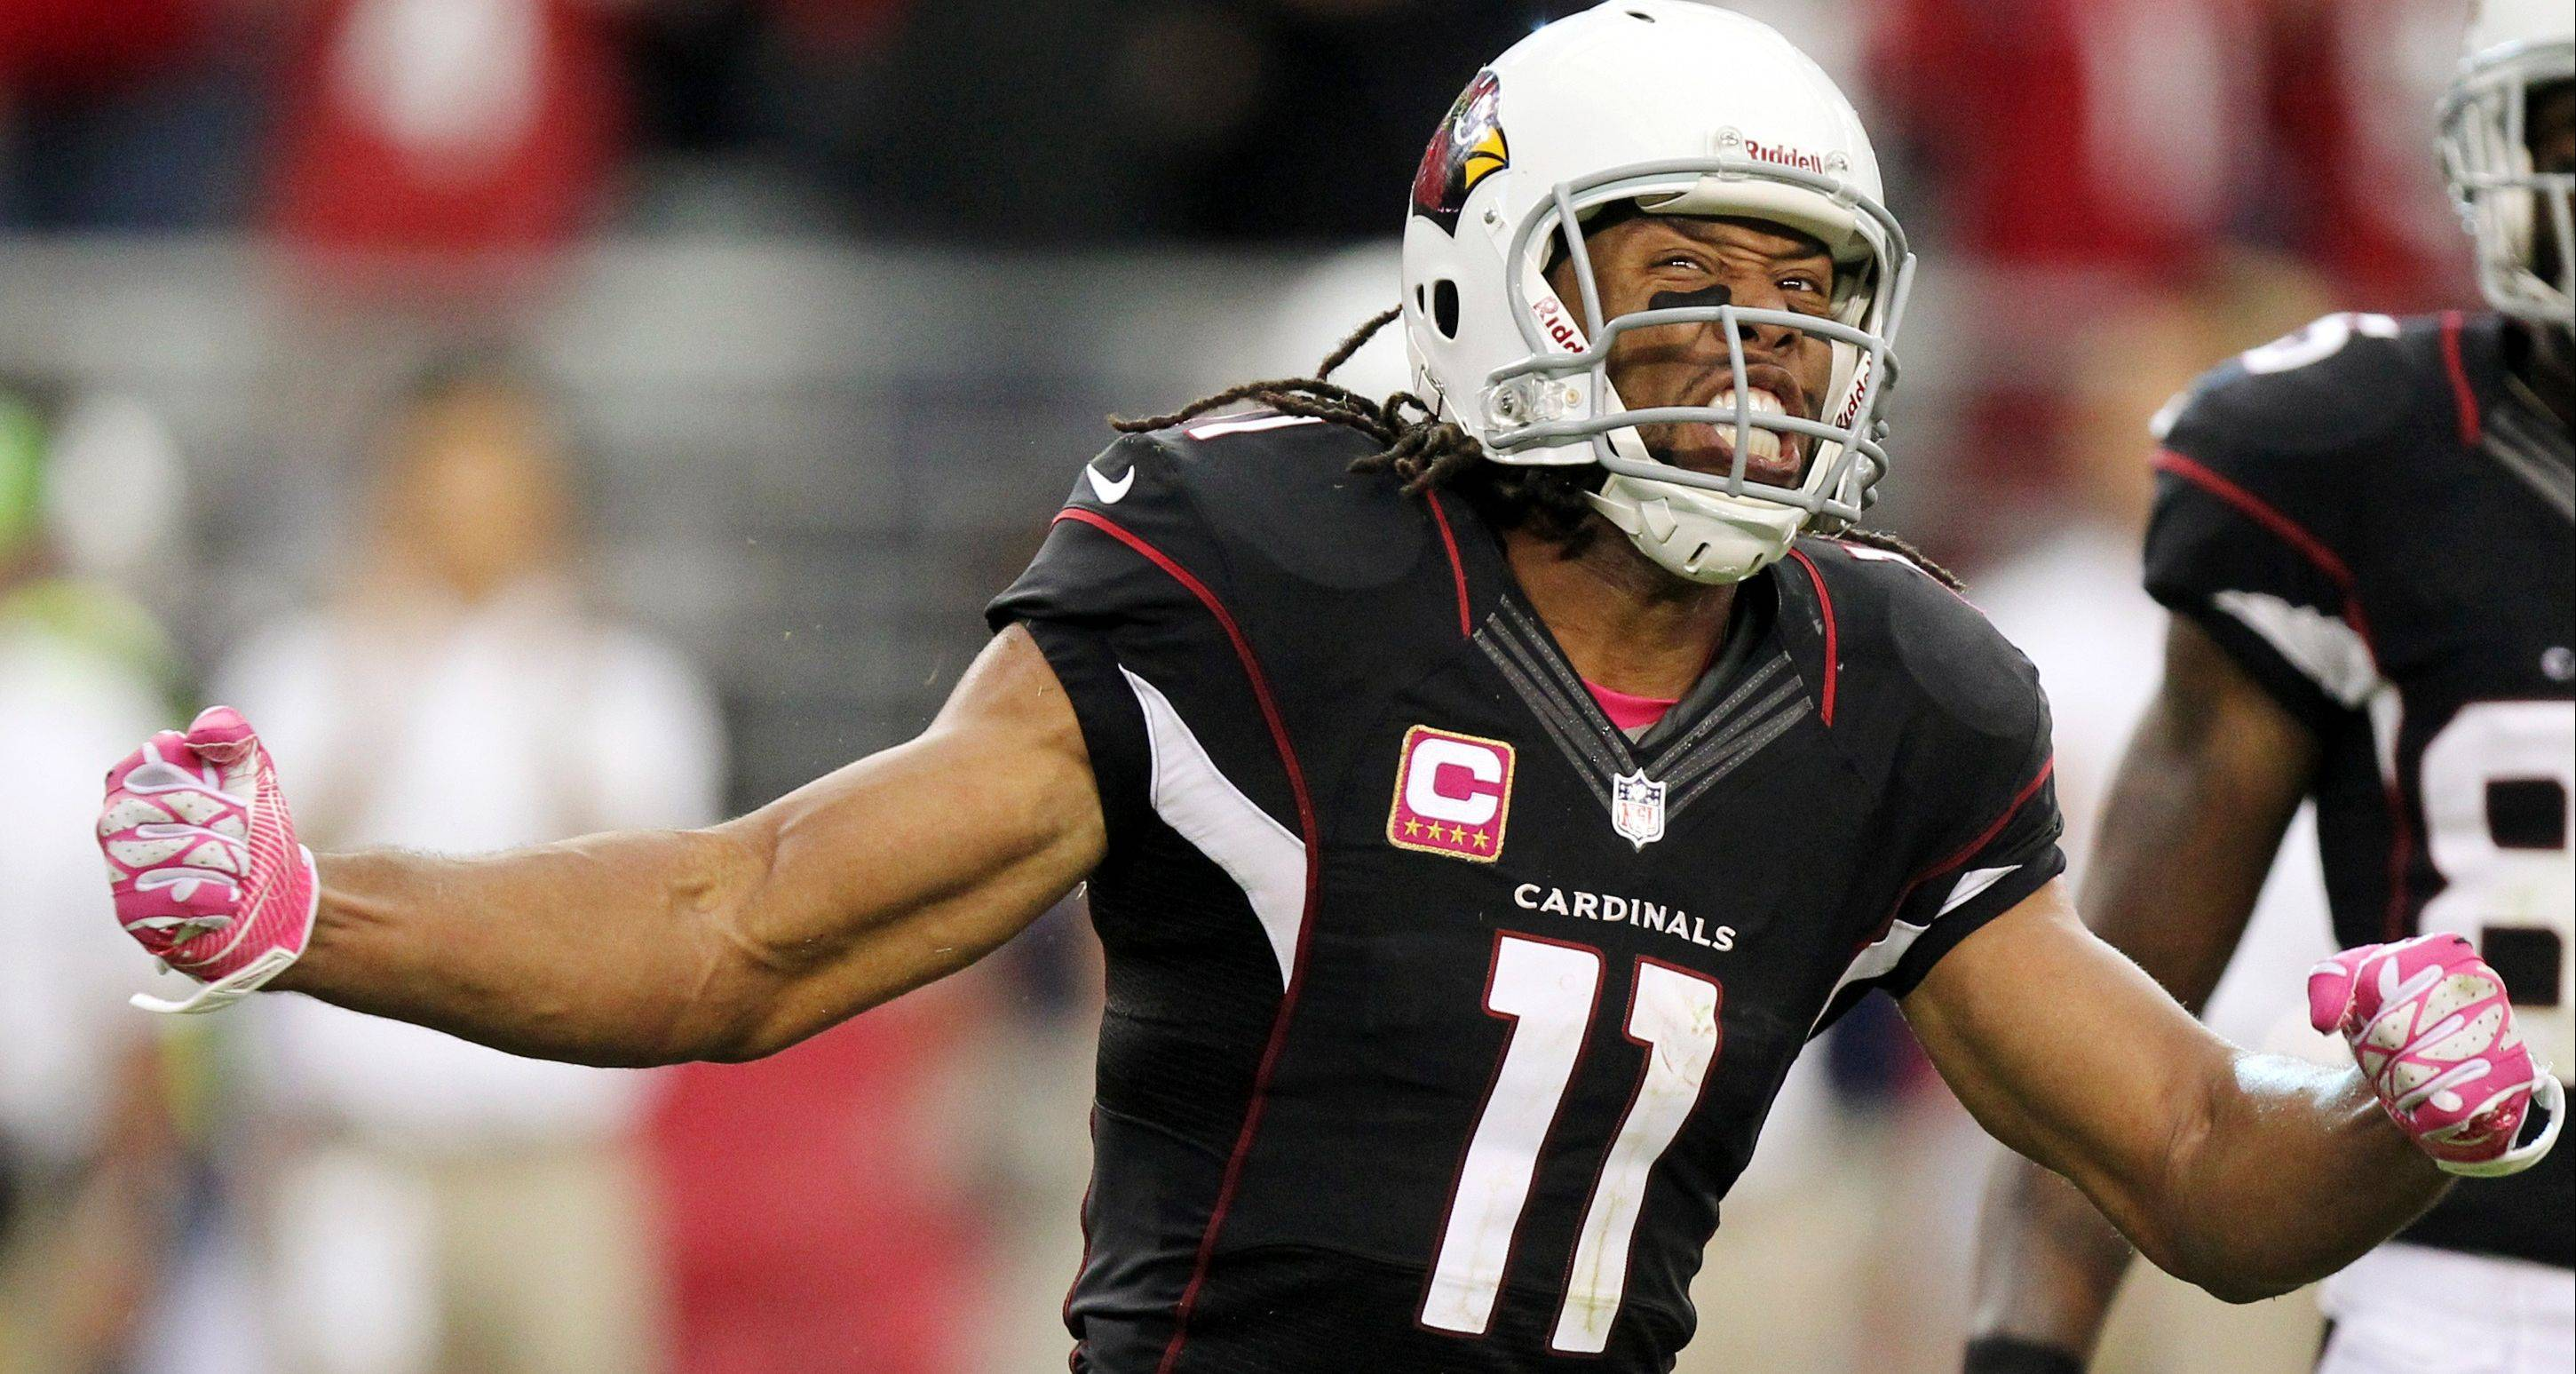 John Dietz believes Cardinals WR Larry Fitzgerald will not post numbers fantasy owners are used to seeing the rest of this season.